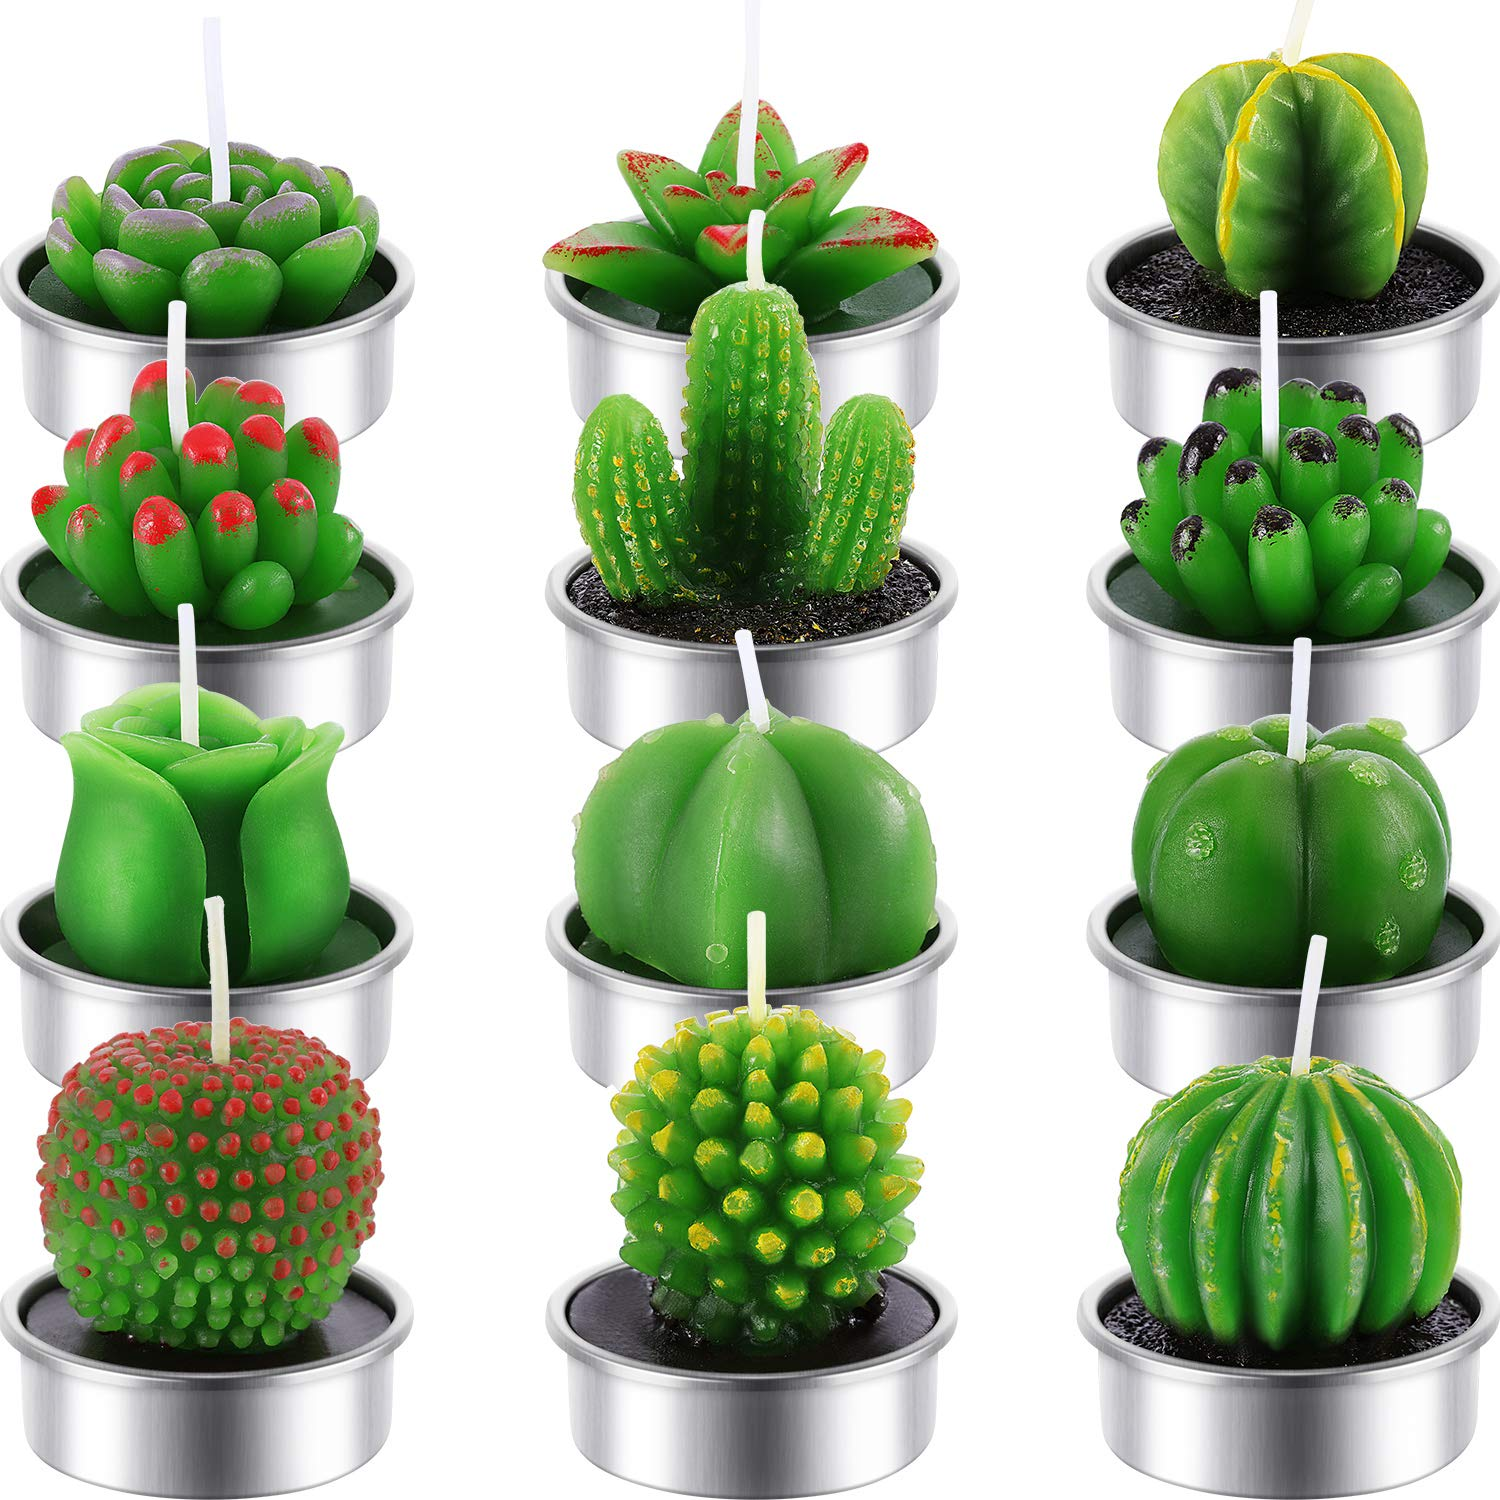 12 Pieces Cactus Candles Succulent Cactus Rose Tealight Handmade Candles for Teatime Spa Home Party Wedding Decoration Gifts Tatuo